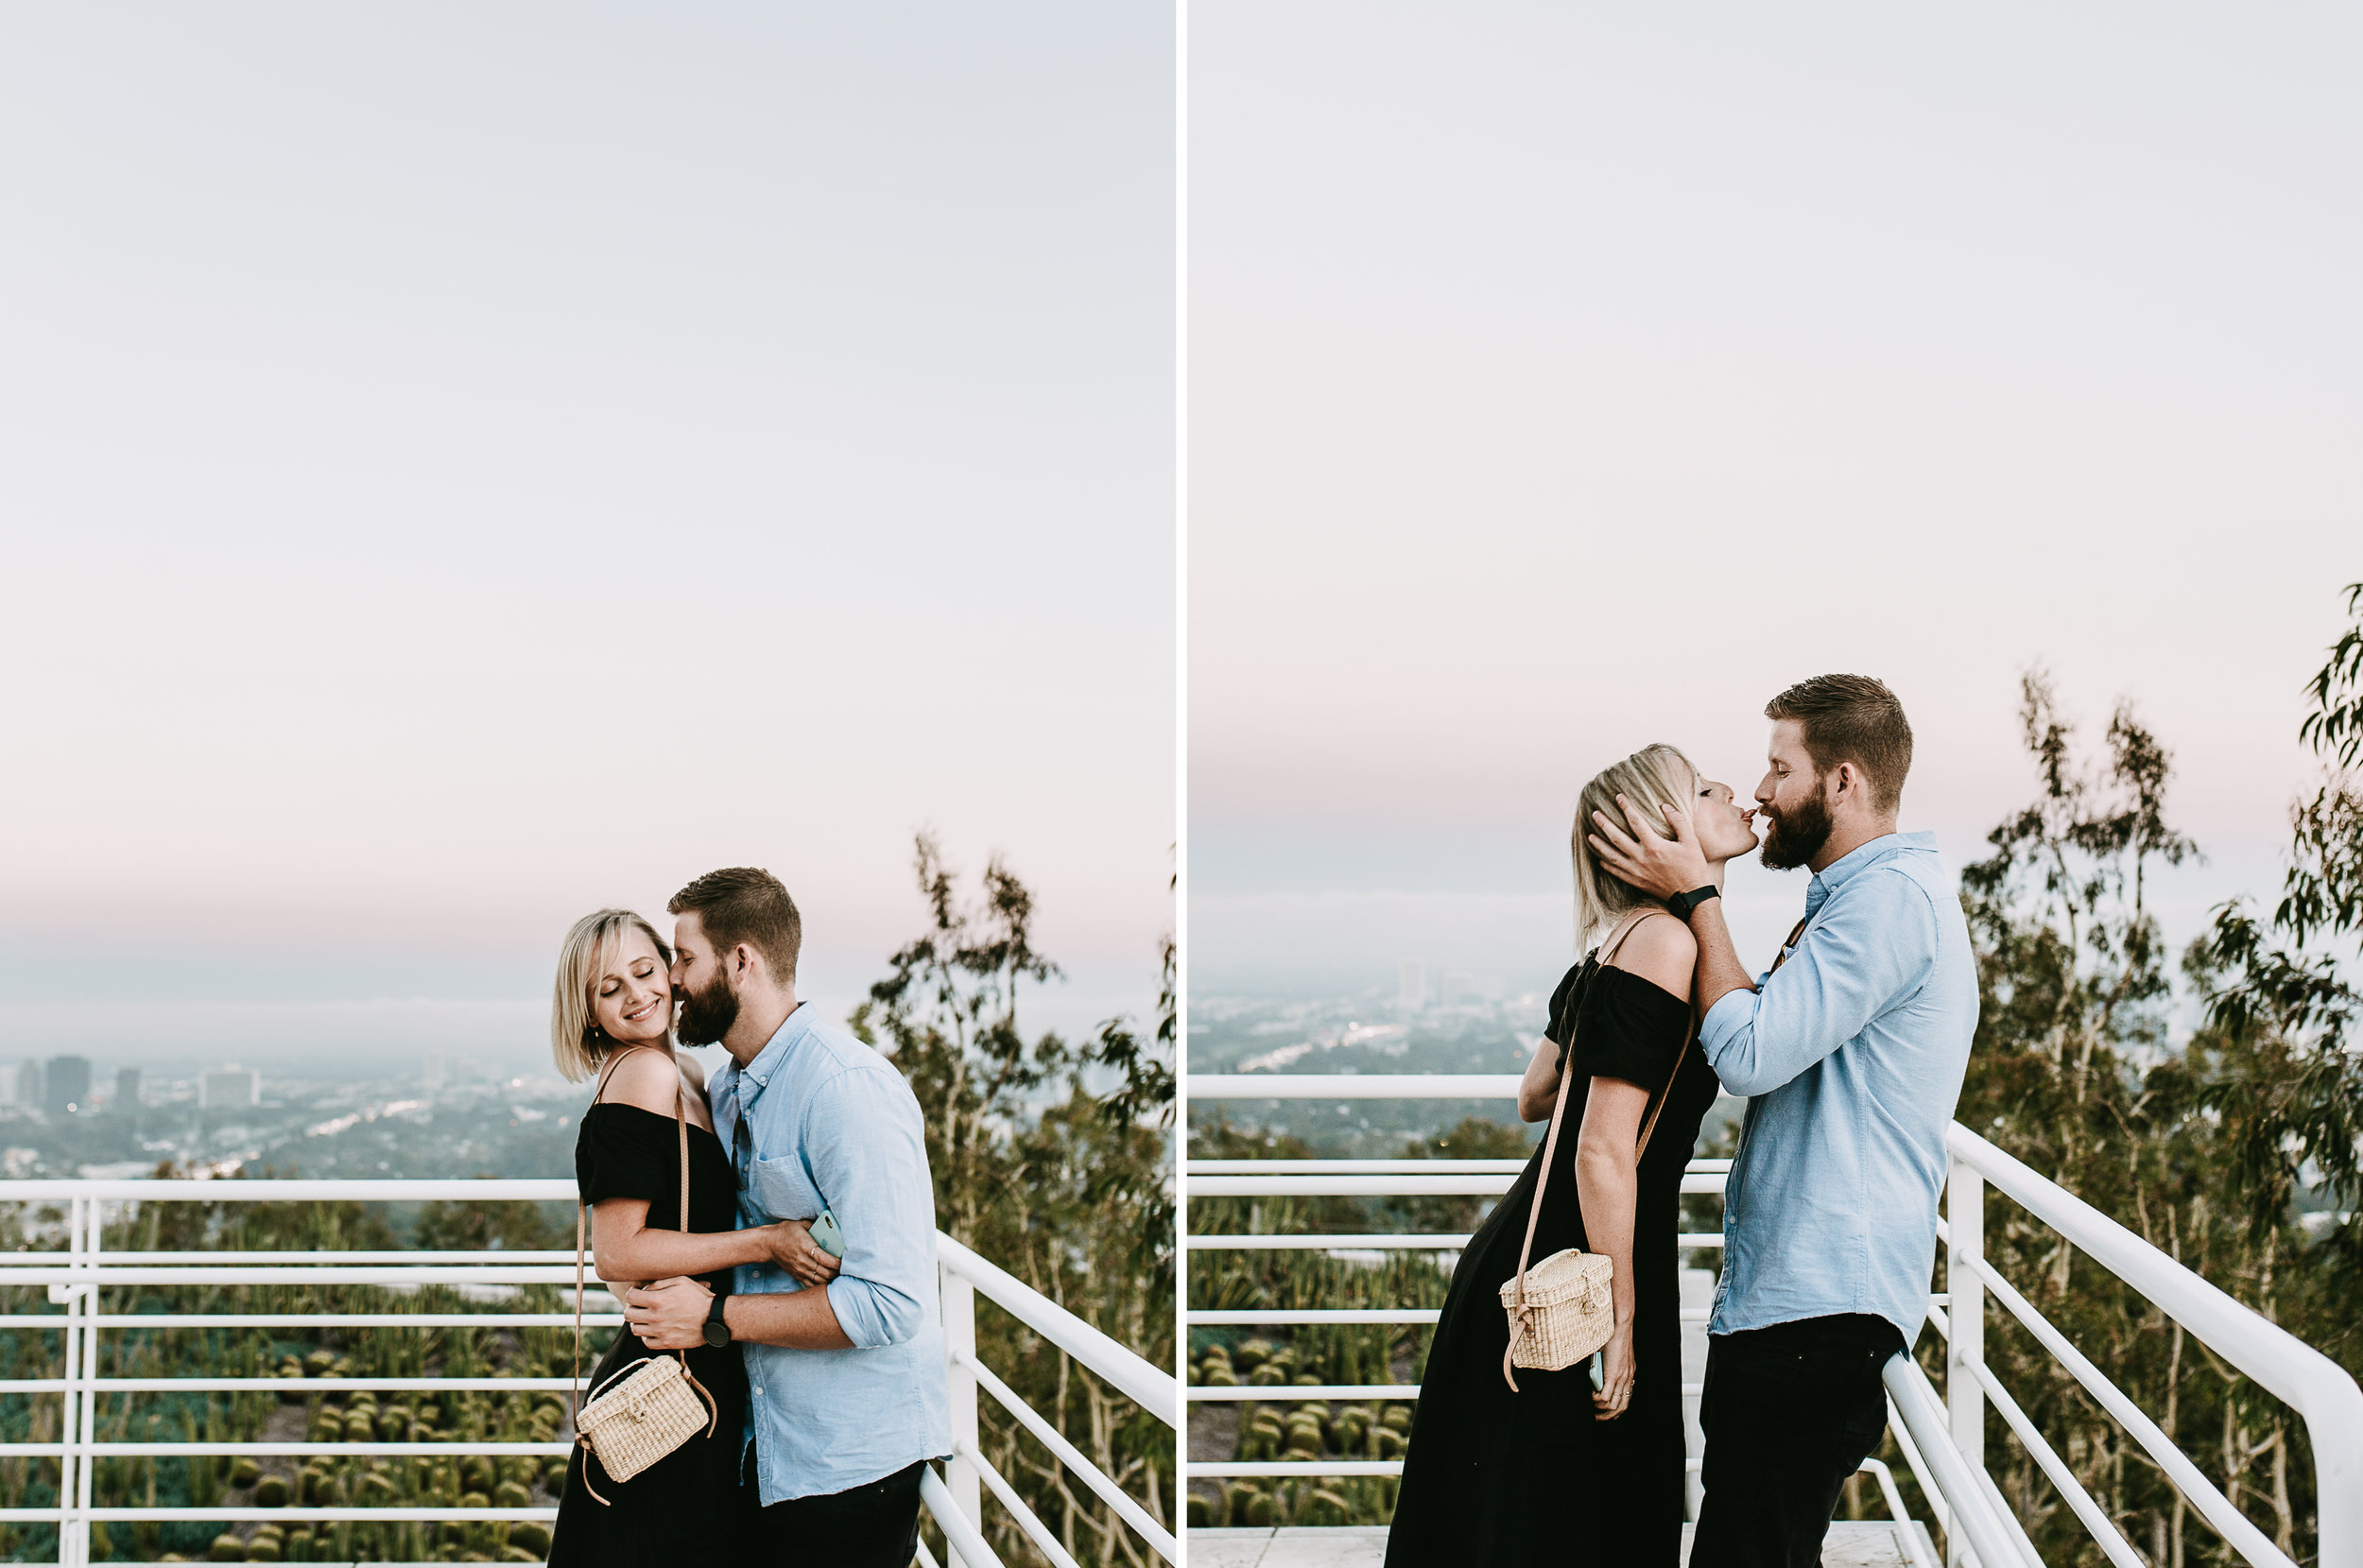 S&T-Proposal-The-Getty-Center-CRMMedia-Collage-5.jpg